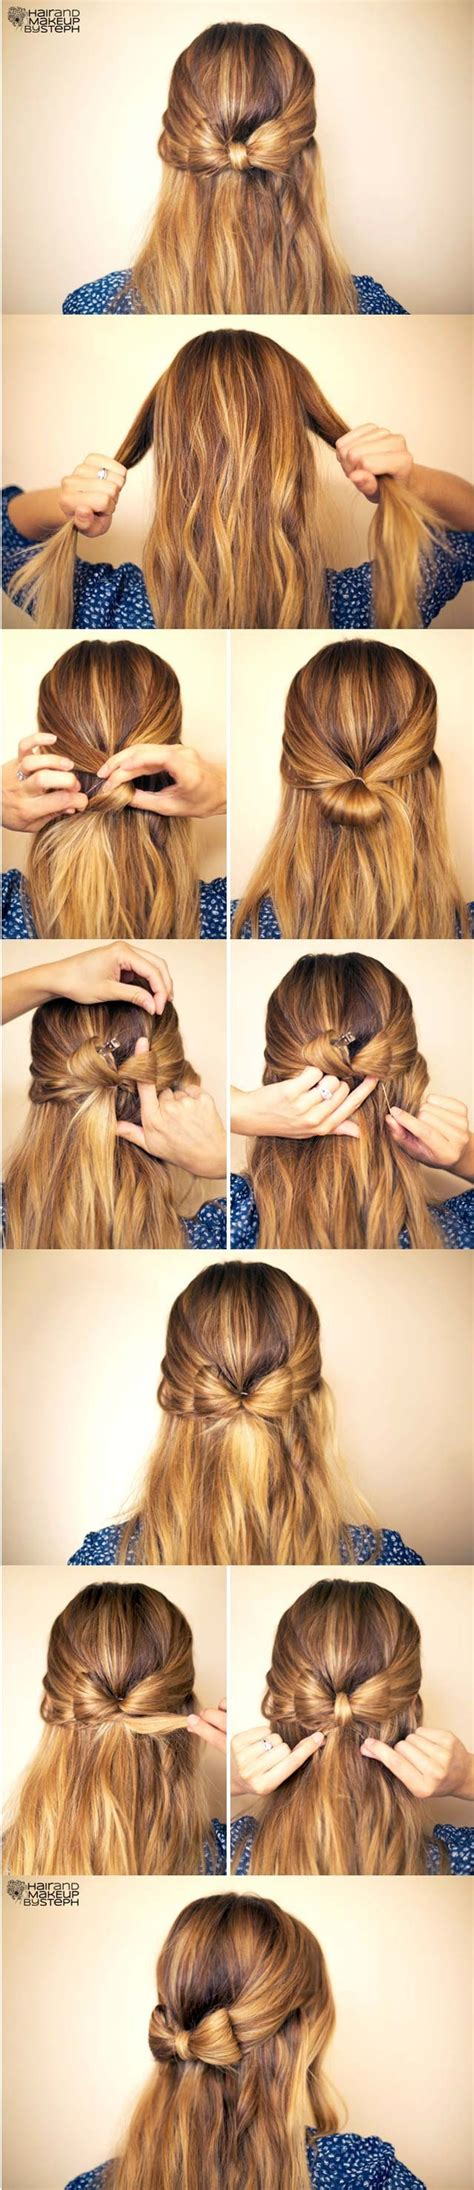 pretty hairstyles how to do 19 pretty long hairstyles with tutorials pretty designs